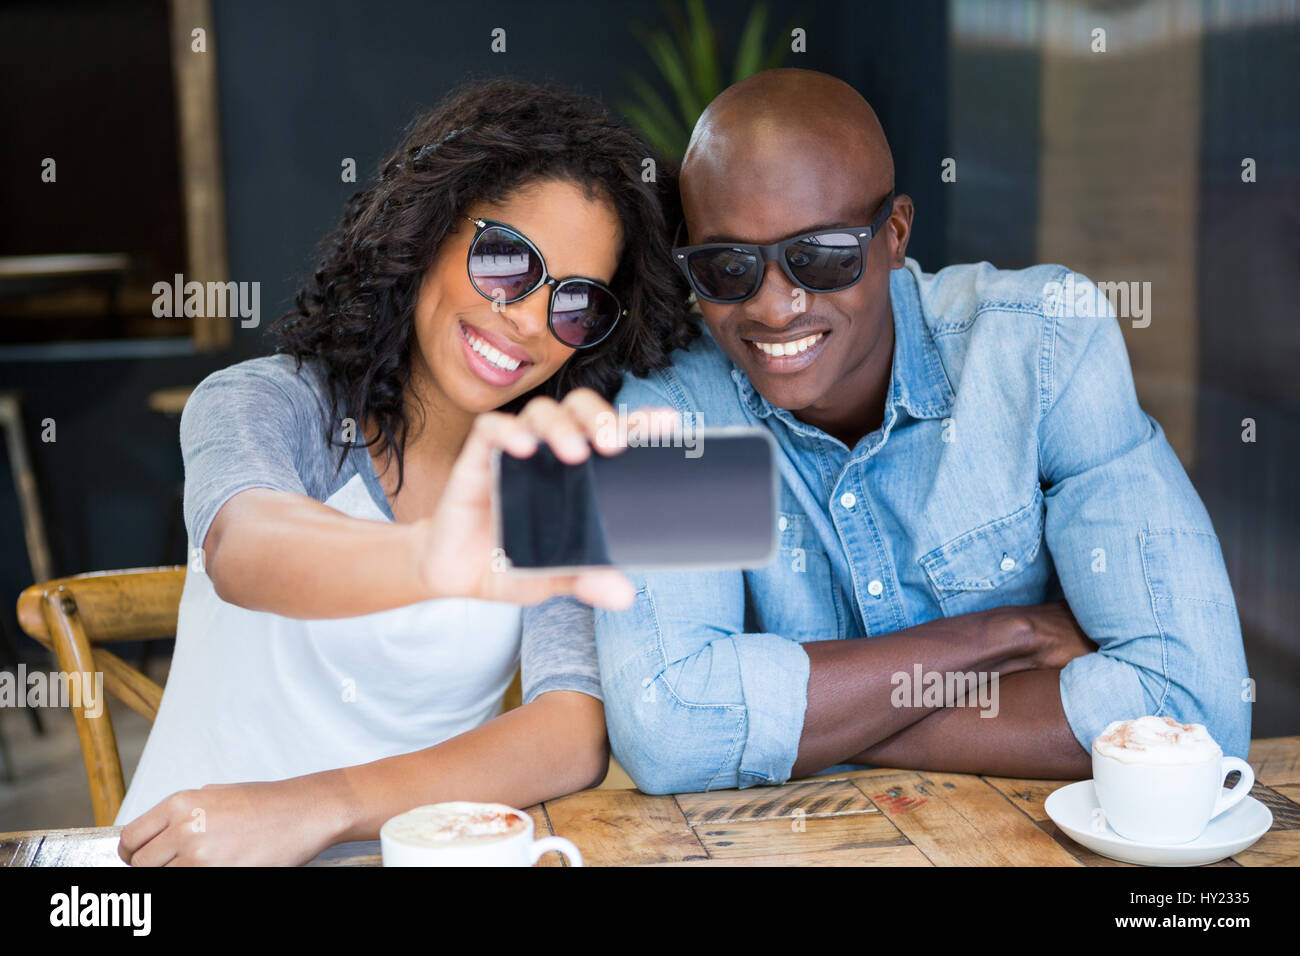 Smiling young couple taking selfie with smart phone in coffee shop Stock Photo